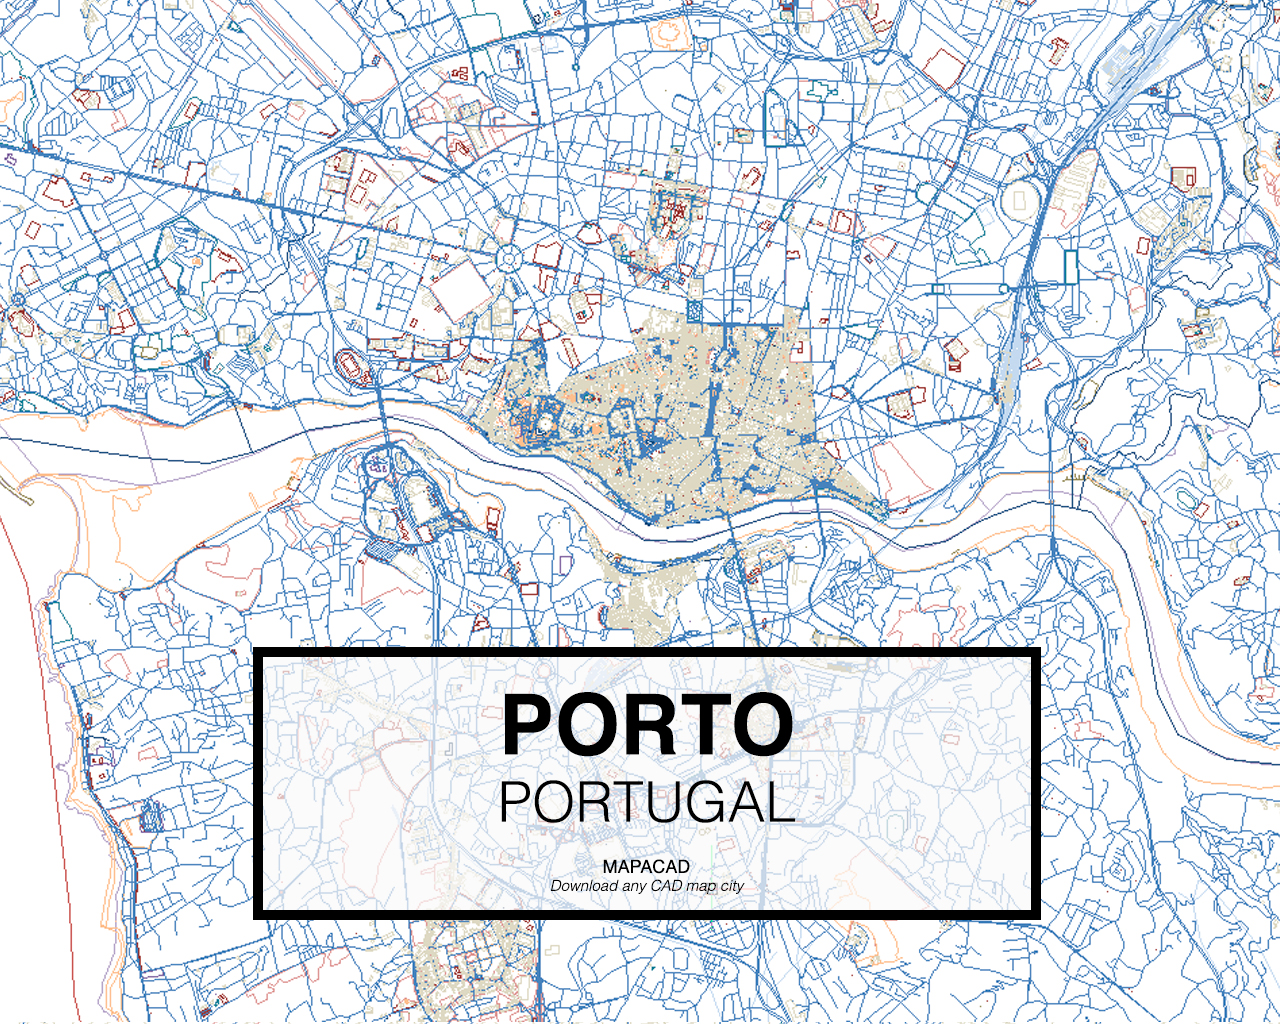 Download any cad map city mapacad porto portugal 01 mapacad download map cad dwg gumiabroncs Image collections